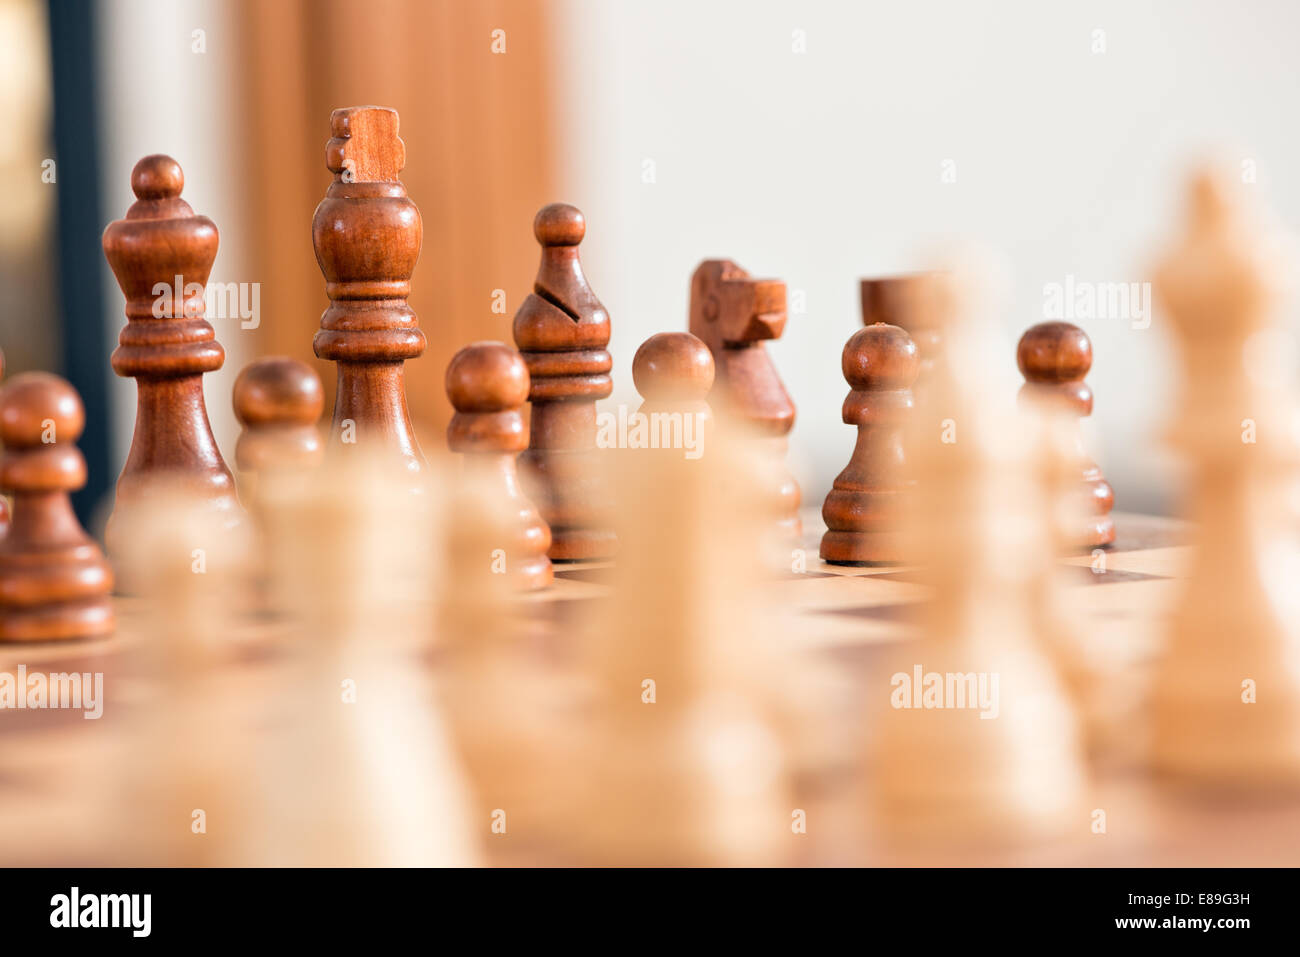 Wooden chess pieces facing off, across the games board during a match - Stock Image